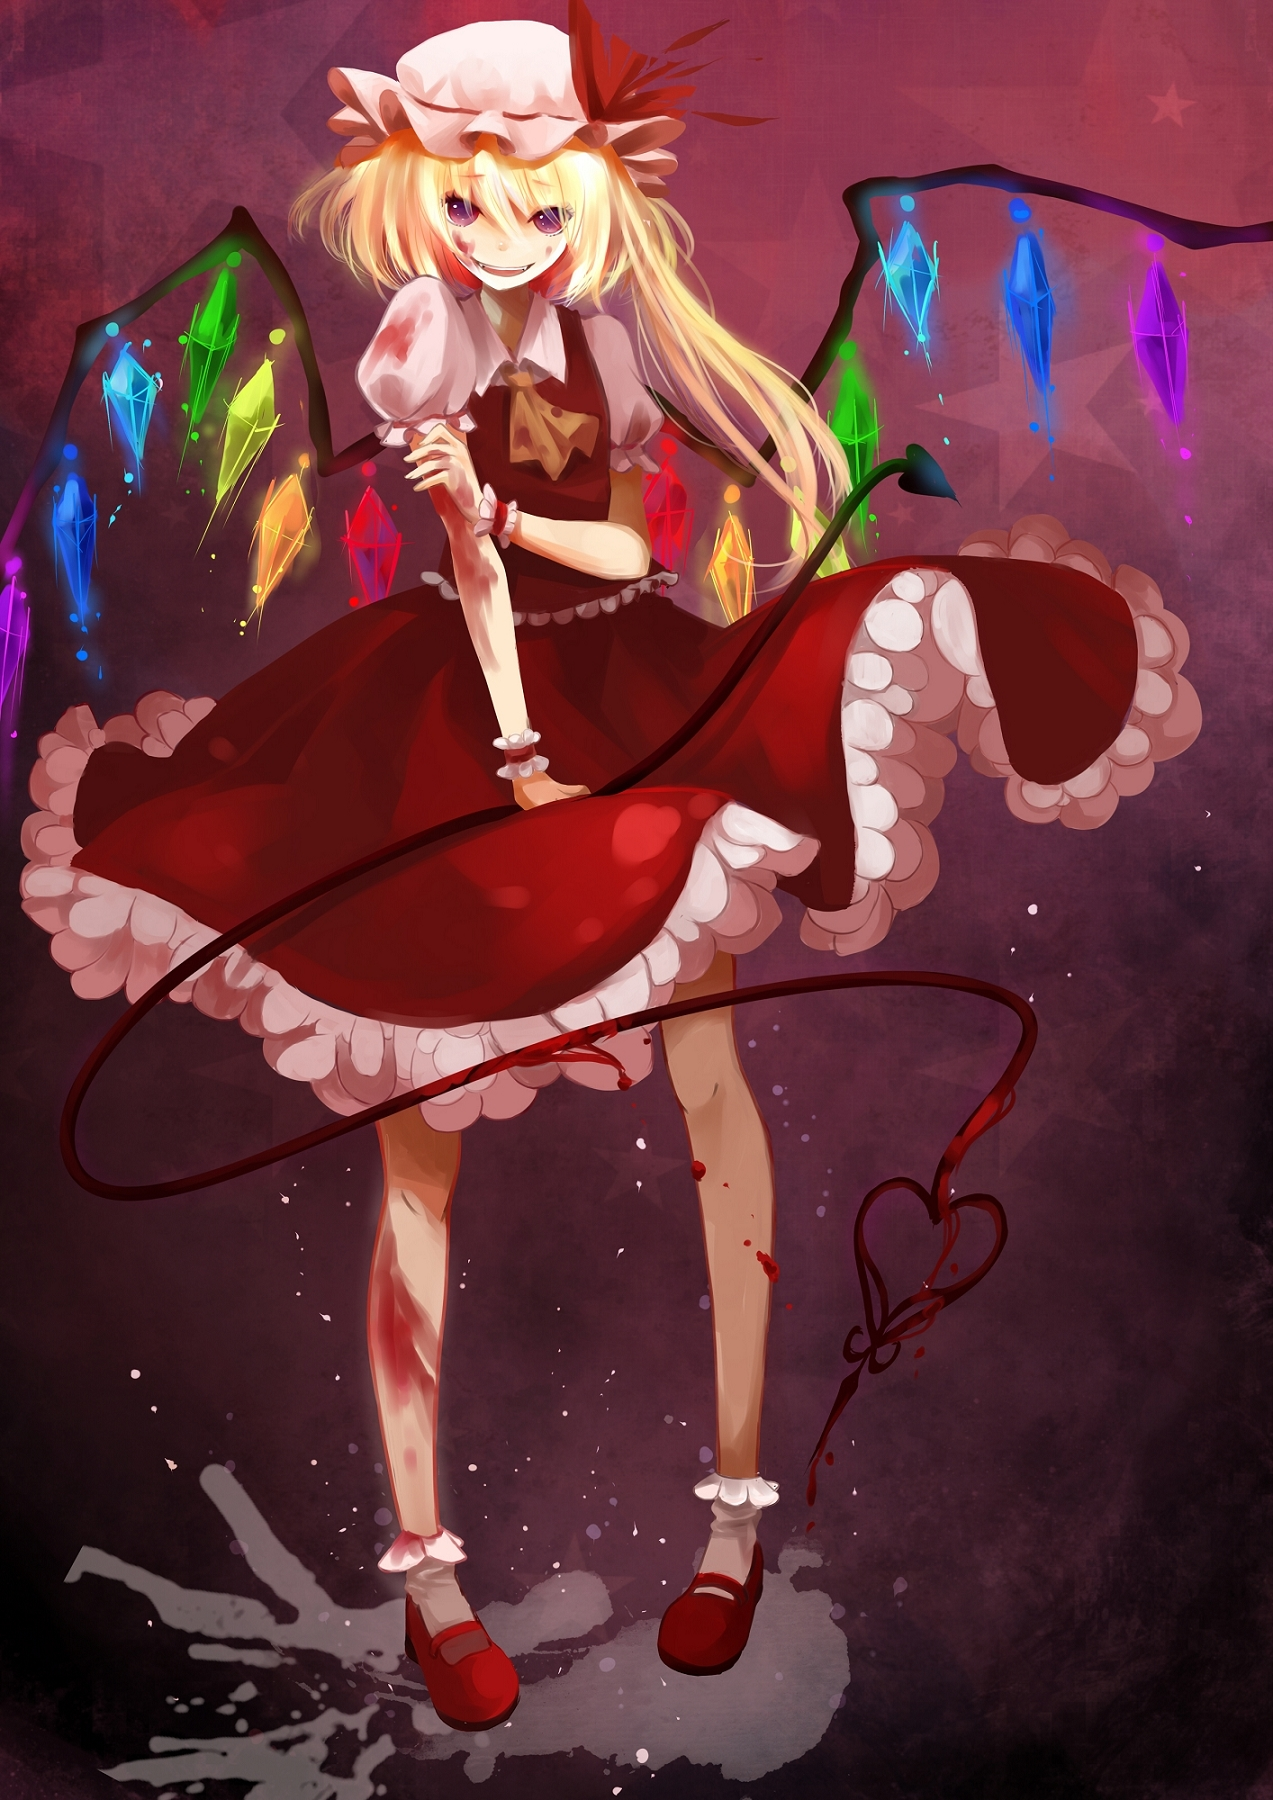 Anime Glass Wallpaper Flandre Scarlet Touhou Mobile Wallpaper 395481